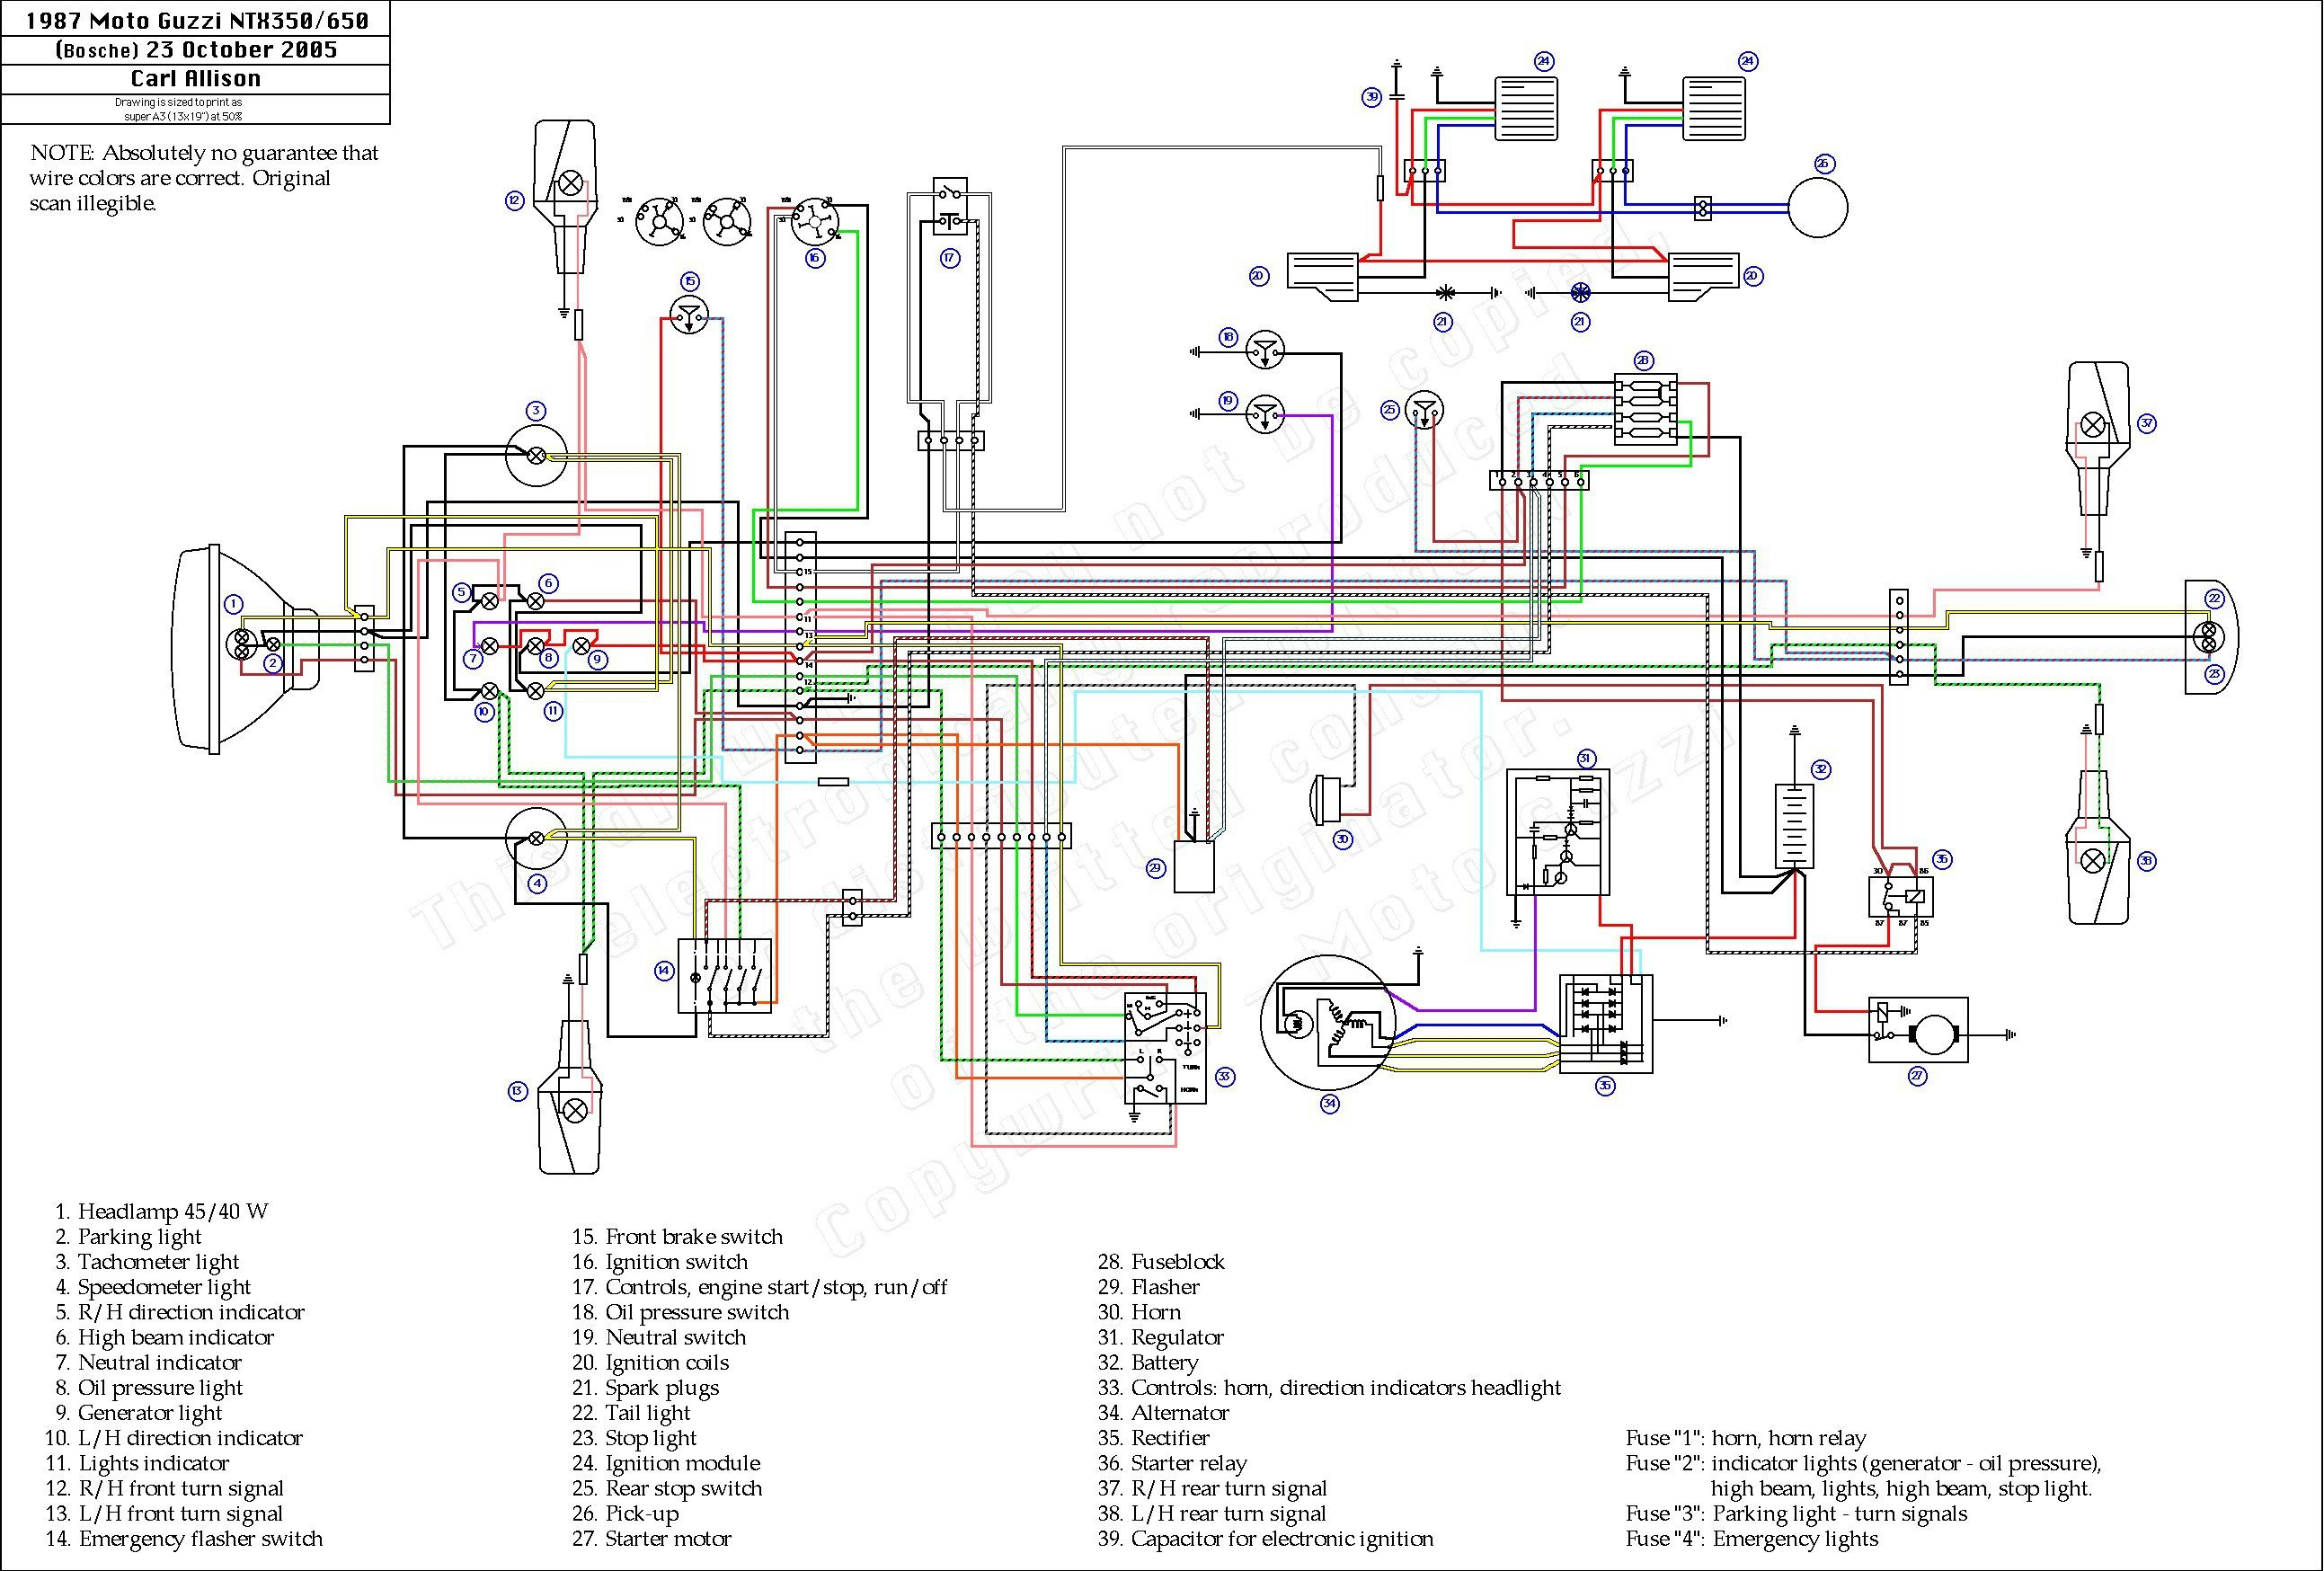 Ata110 B Wiring Diagram - New Era Of Wiring Diagram • - Taotao 110Cc Atv Wiring Diagram